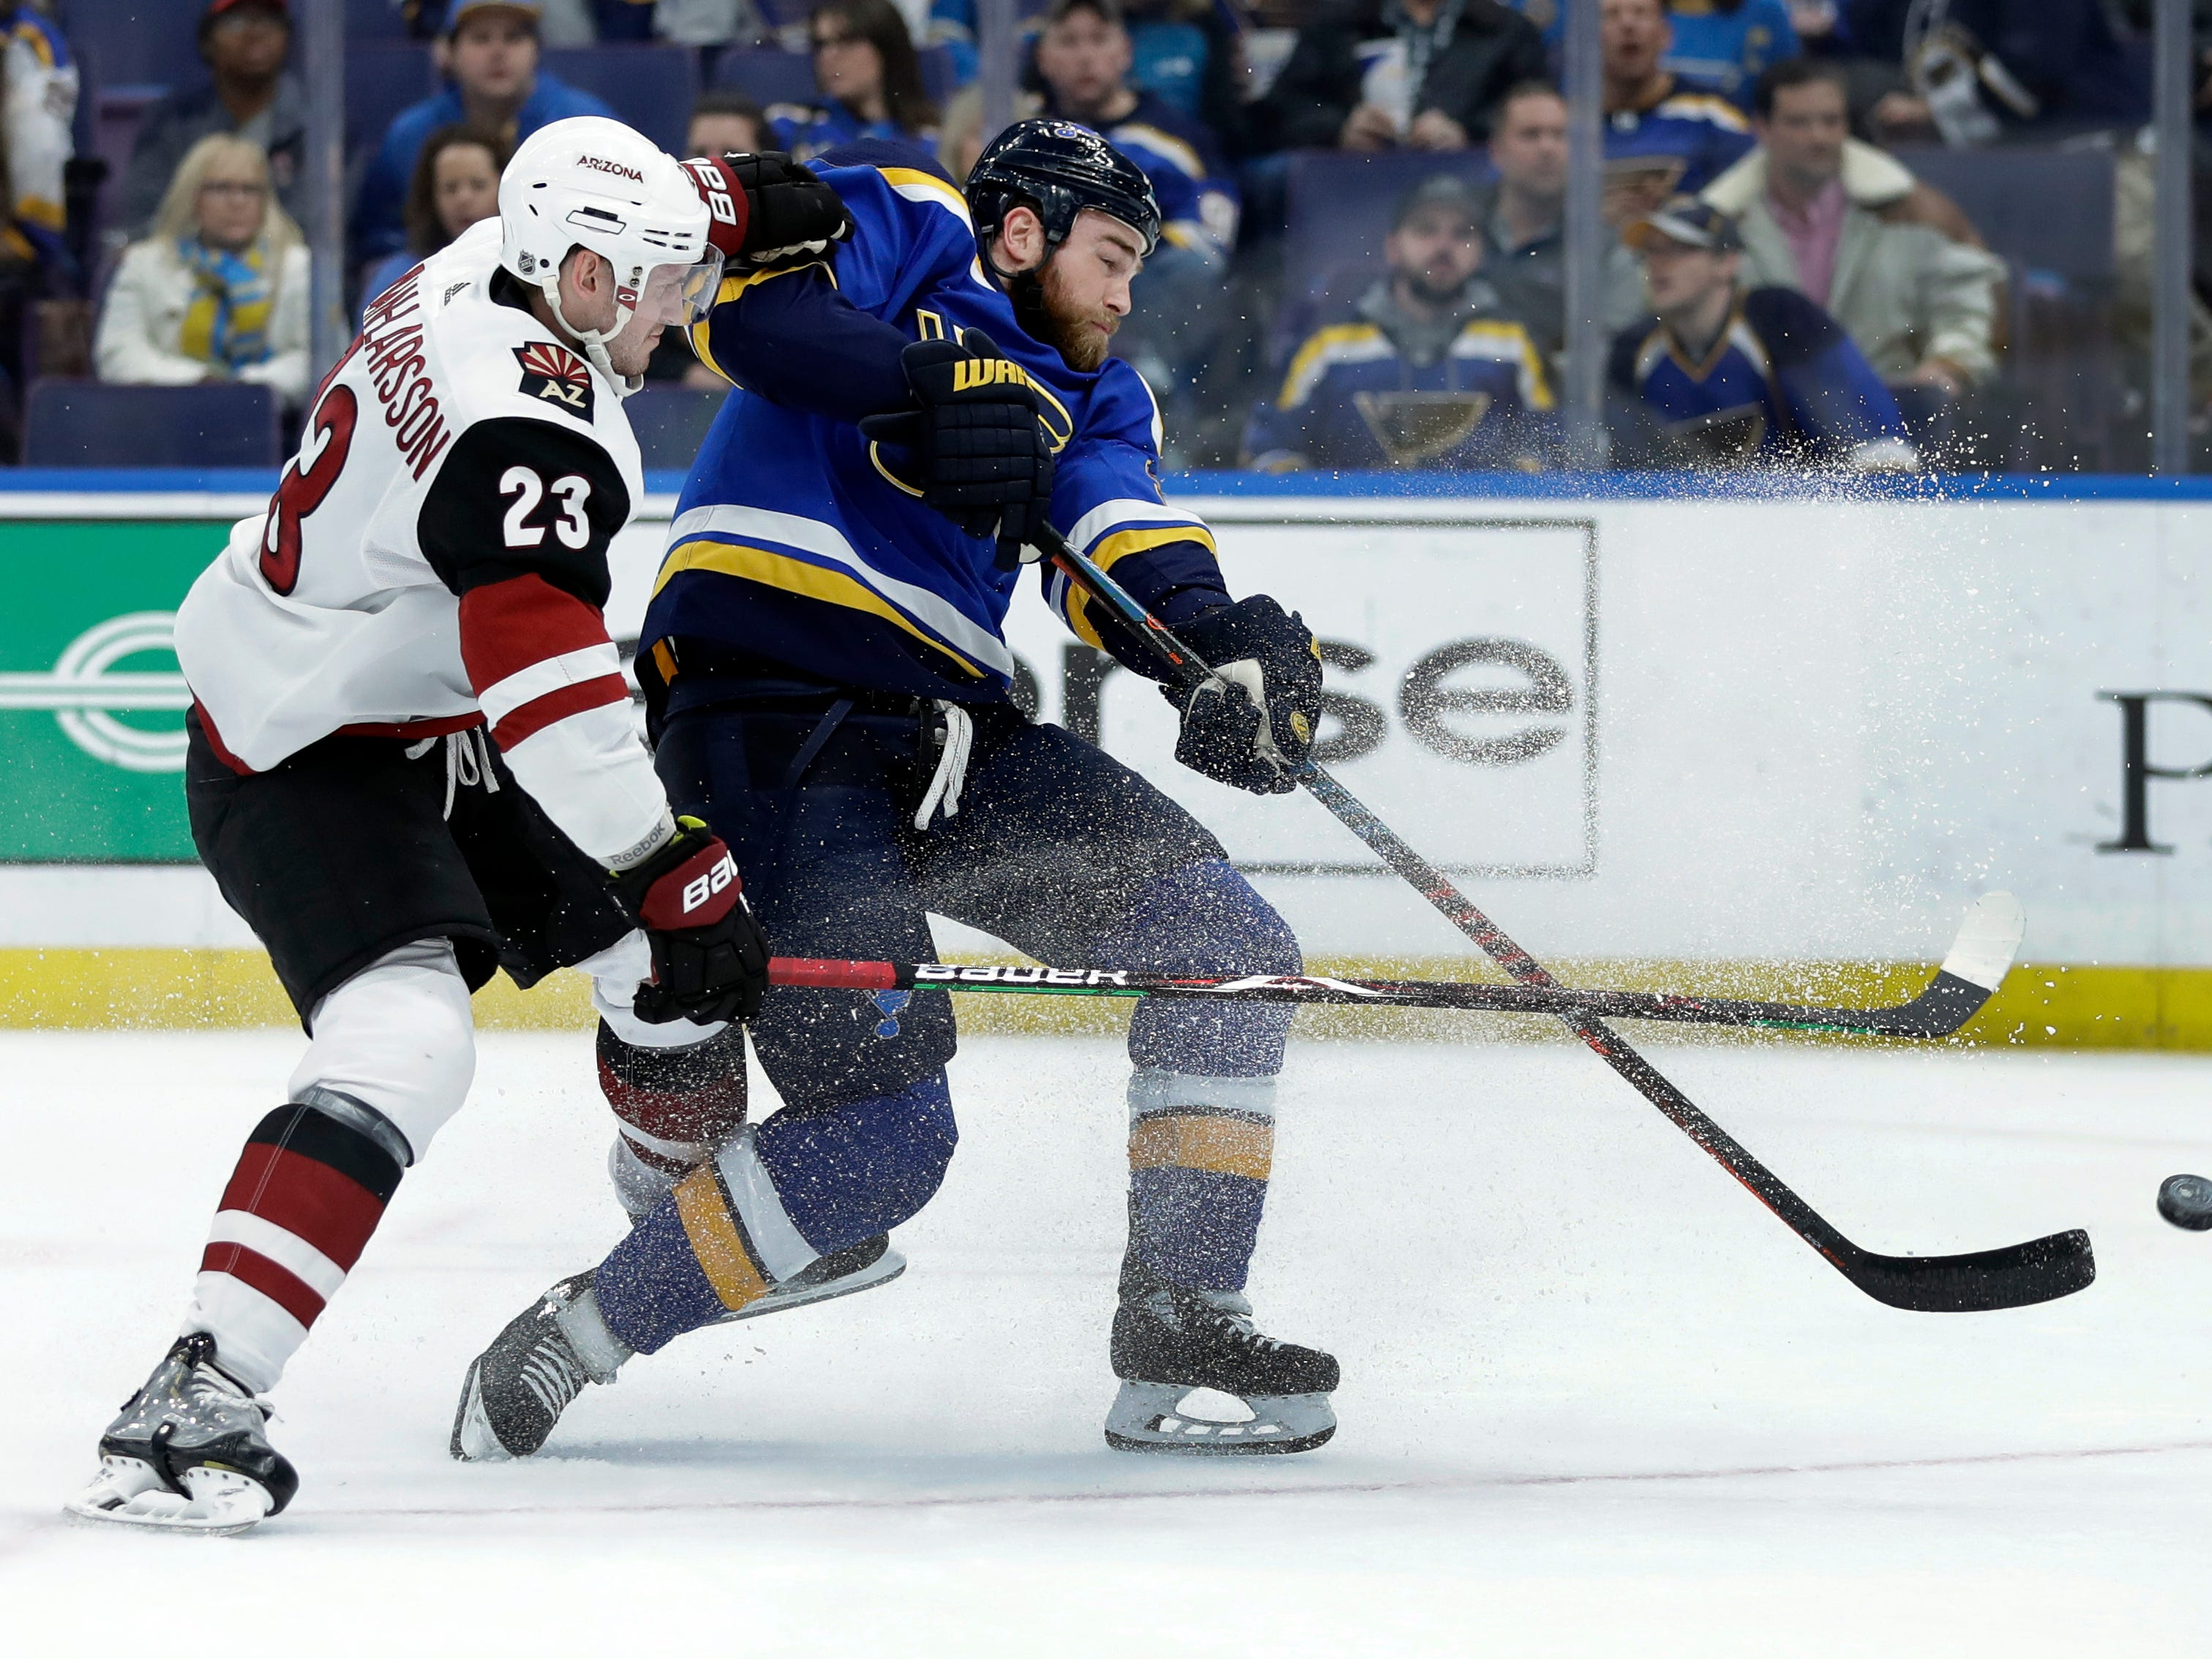 St. Louis Blues' Ryan O'Reilly, right, tries to get off a shot as Arizona Coyotes' Oliver Ekman-Larsson, of Sweden, defends during the second period of an NHL hockey game, Tuesday, March 12, 2019, in St. Louis.